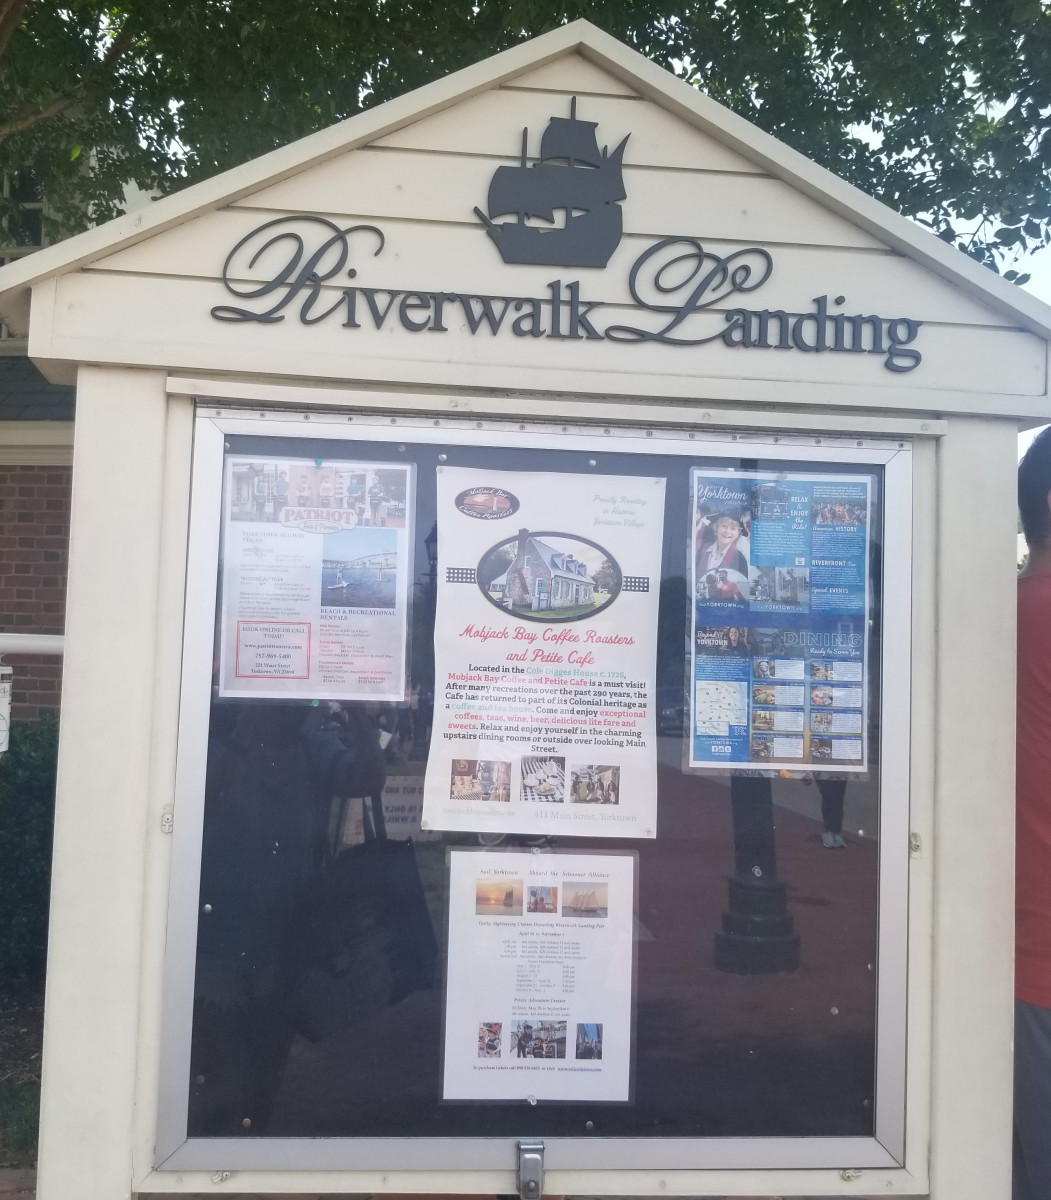 Riverwalk has stores and a beach area. Special thanks to my friend, Evan Berson.